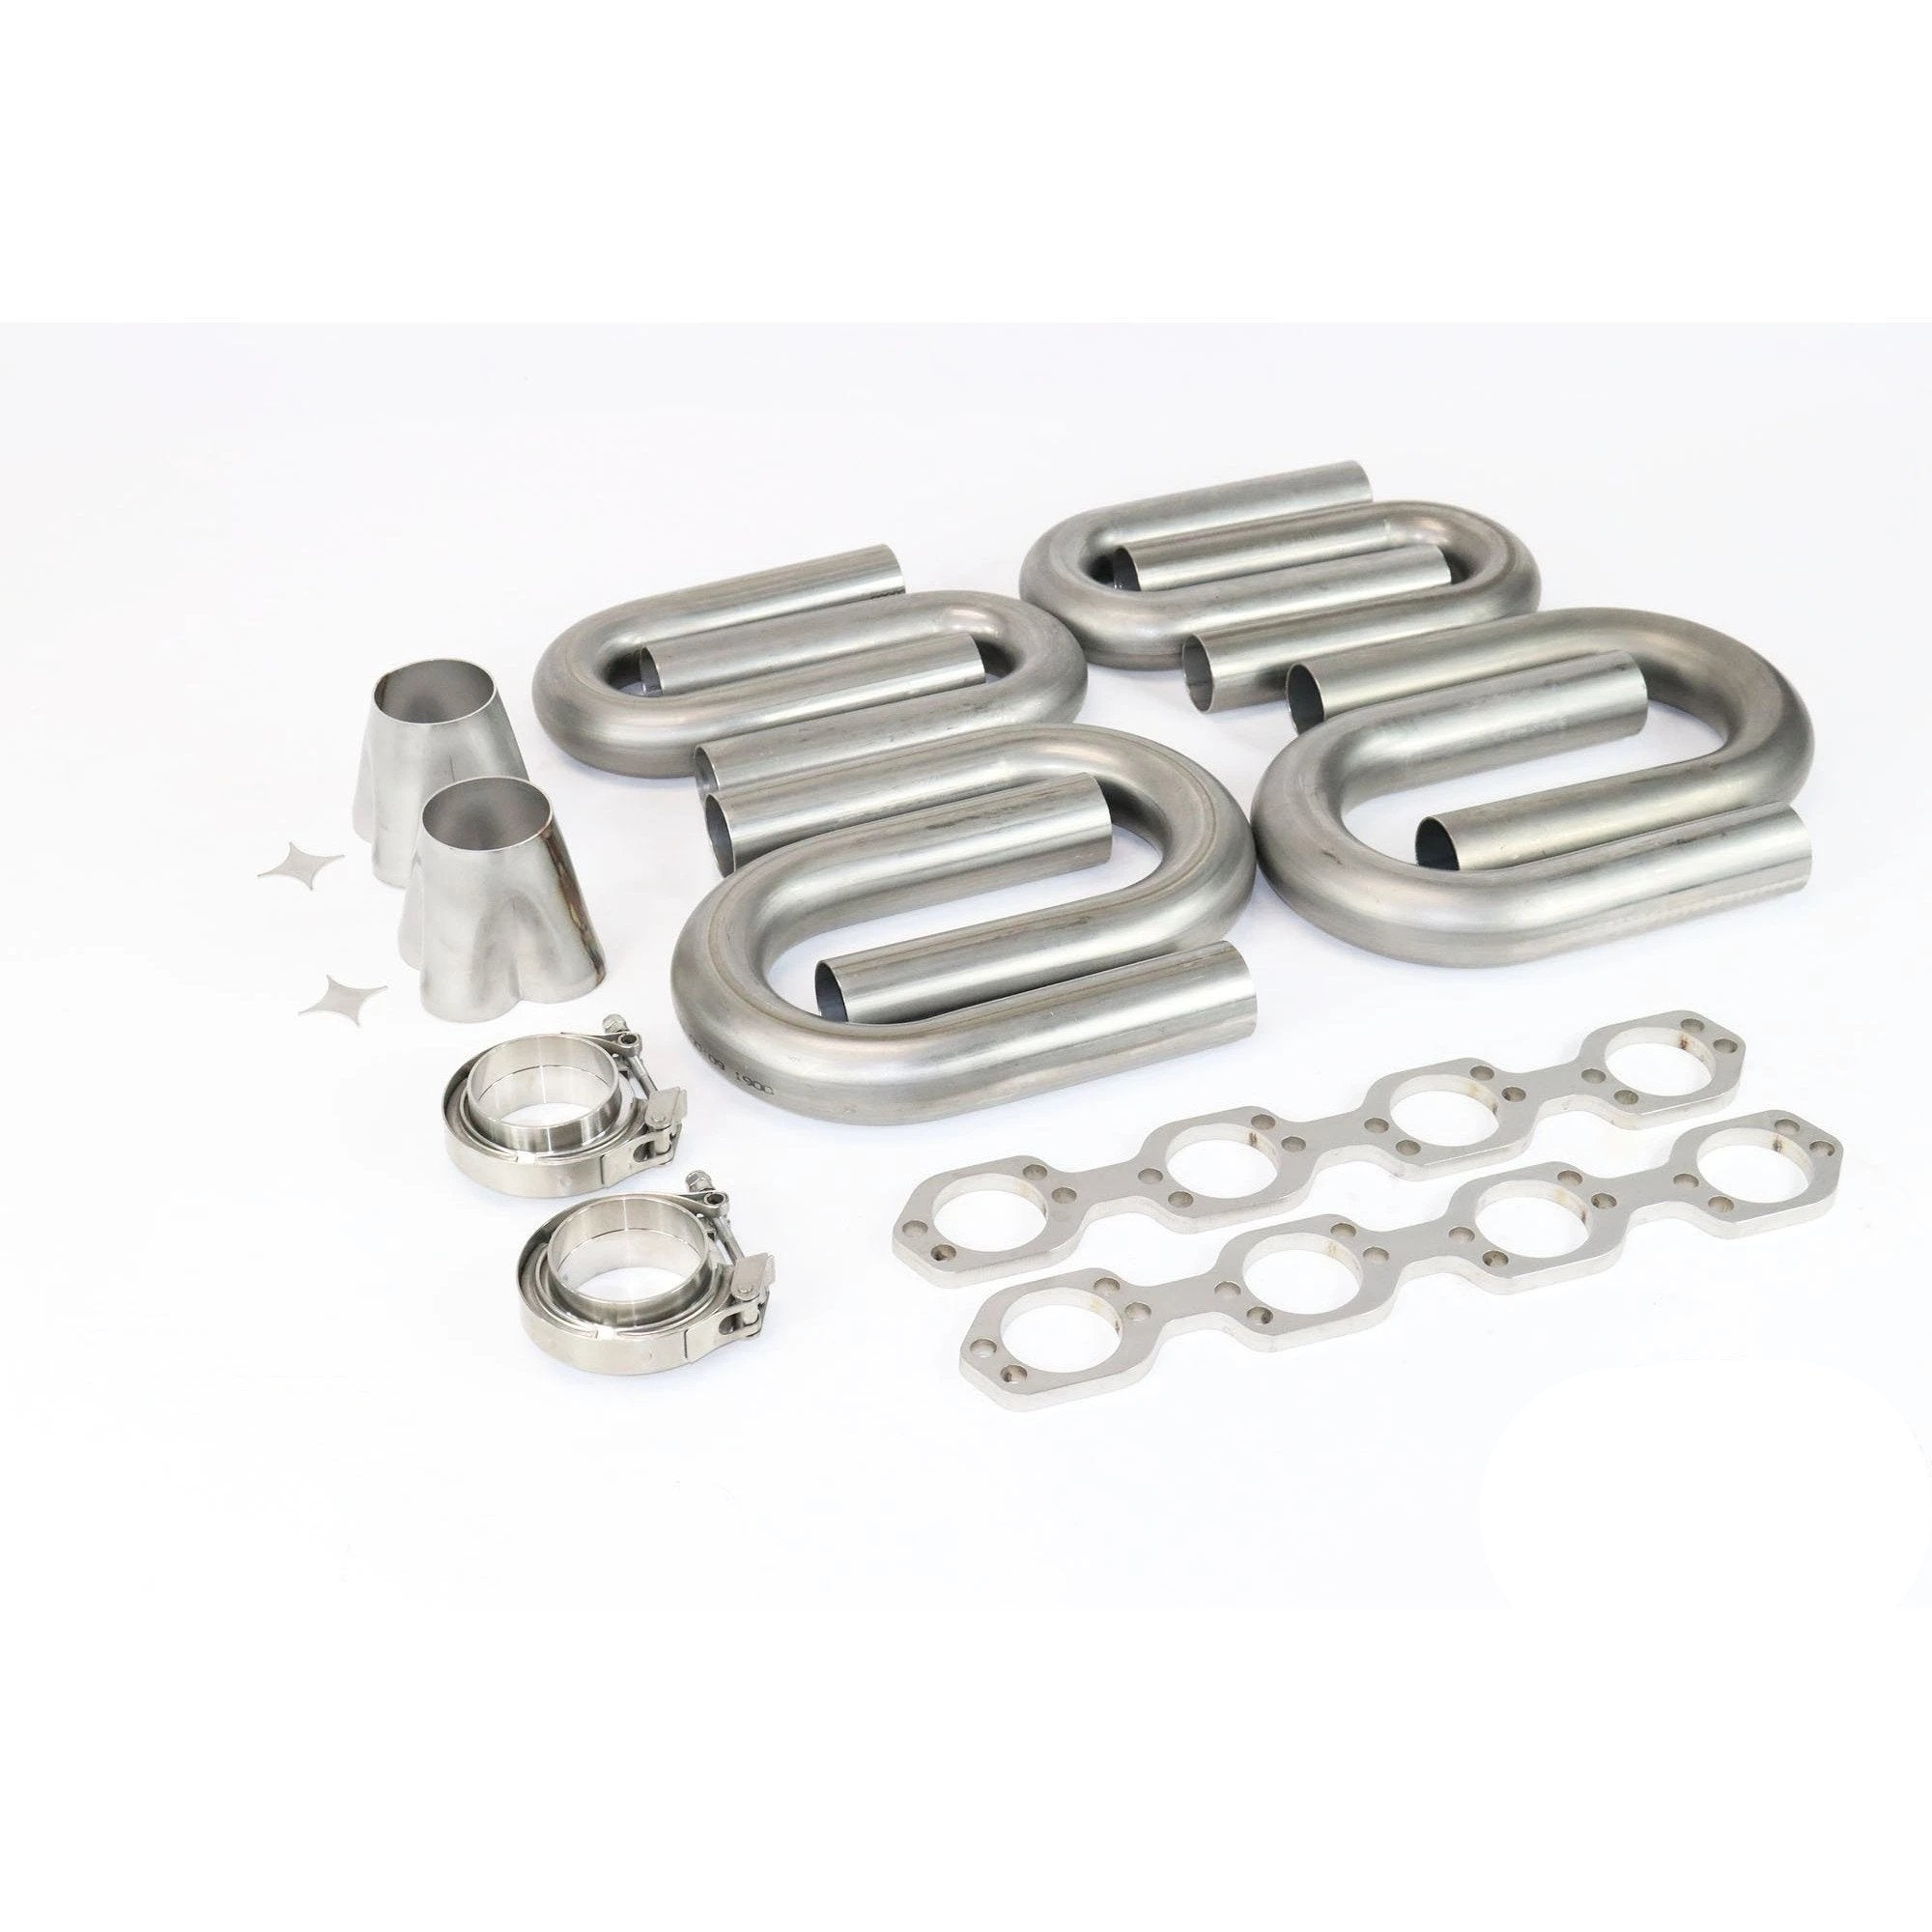 Ford Hi Port SBF 304 Stainless Turbo Header Build Kit 1 7/8 - Motion Raceworks